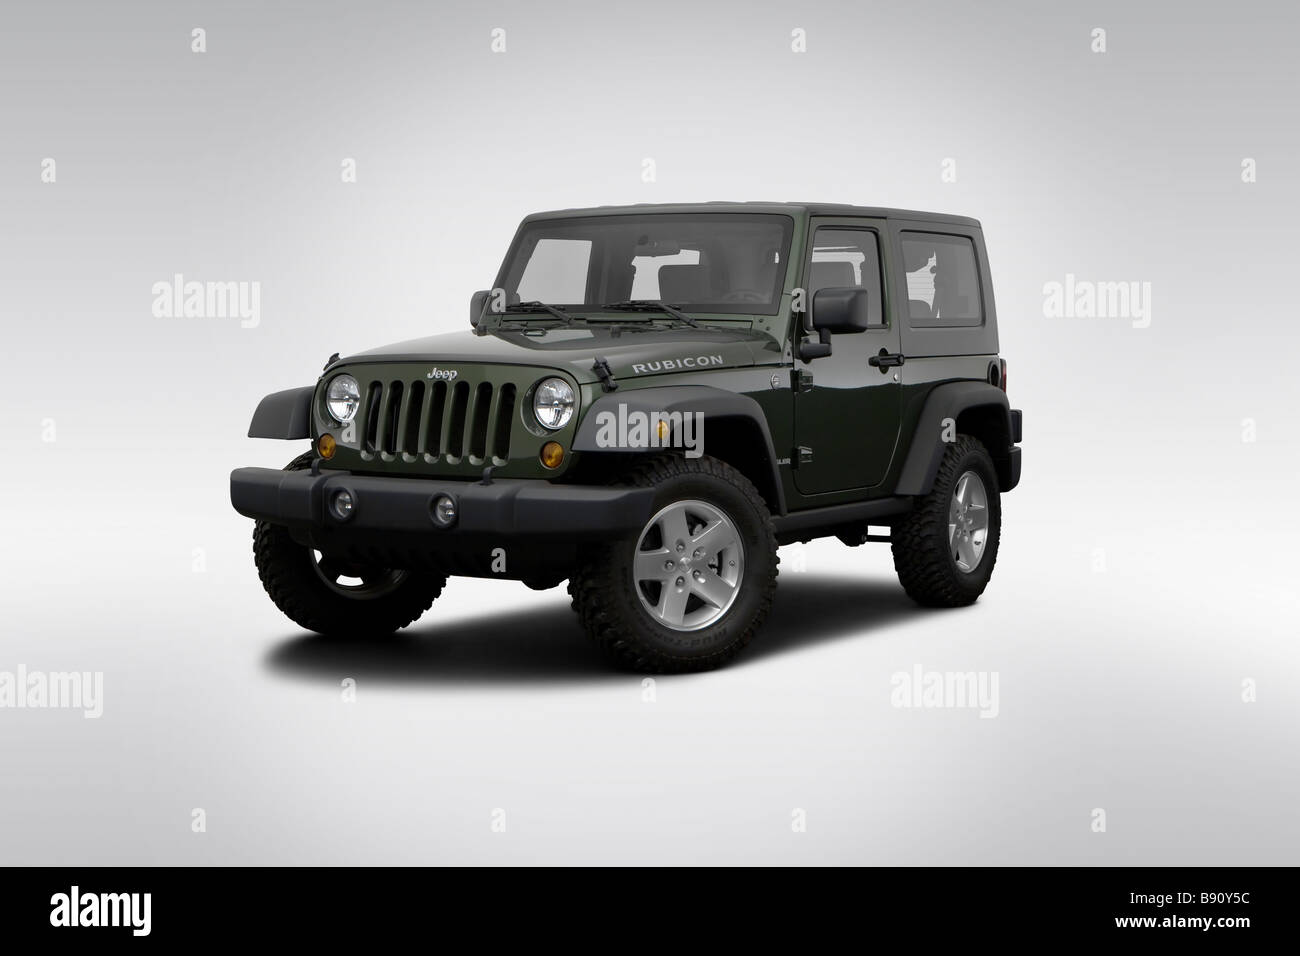 2009 Jeep Wrangler Rubicon in Green - Front angle view